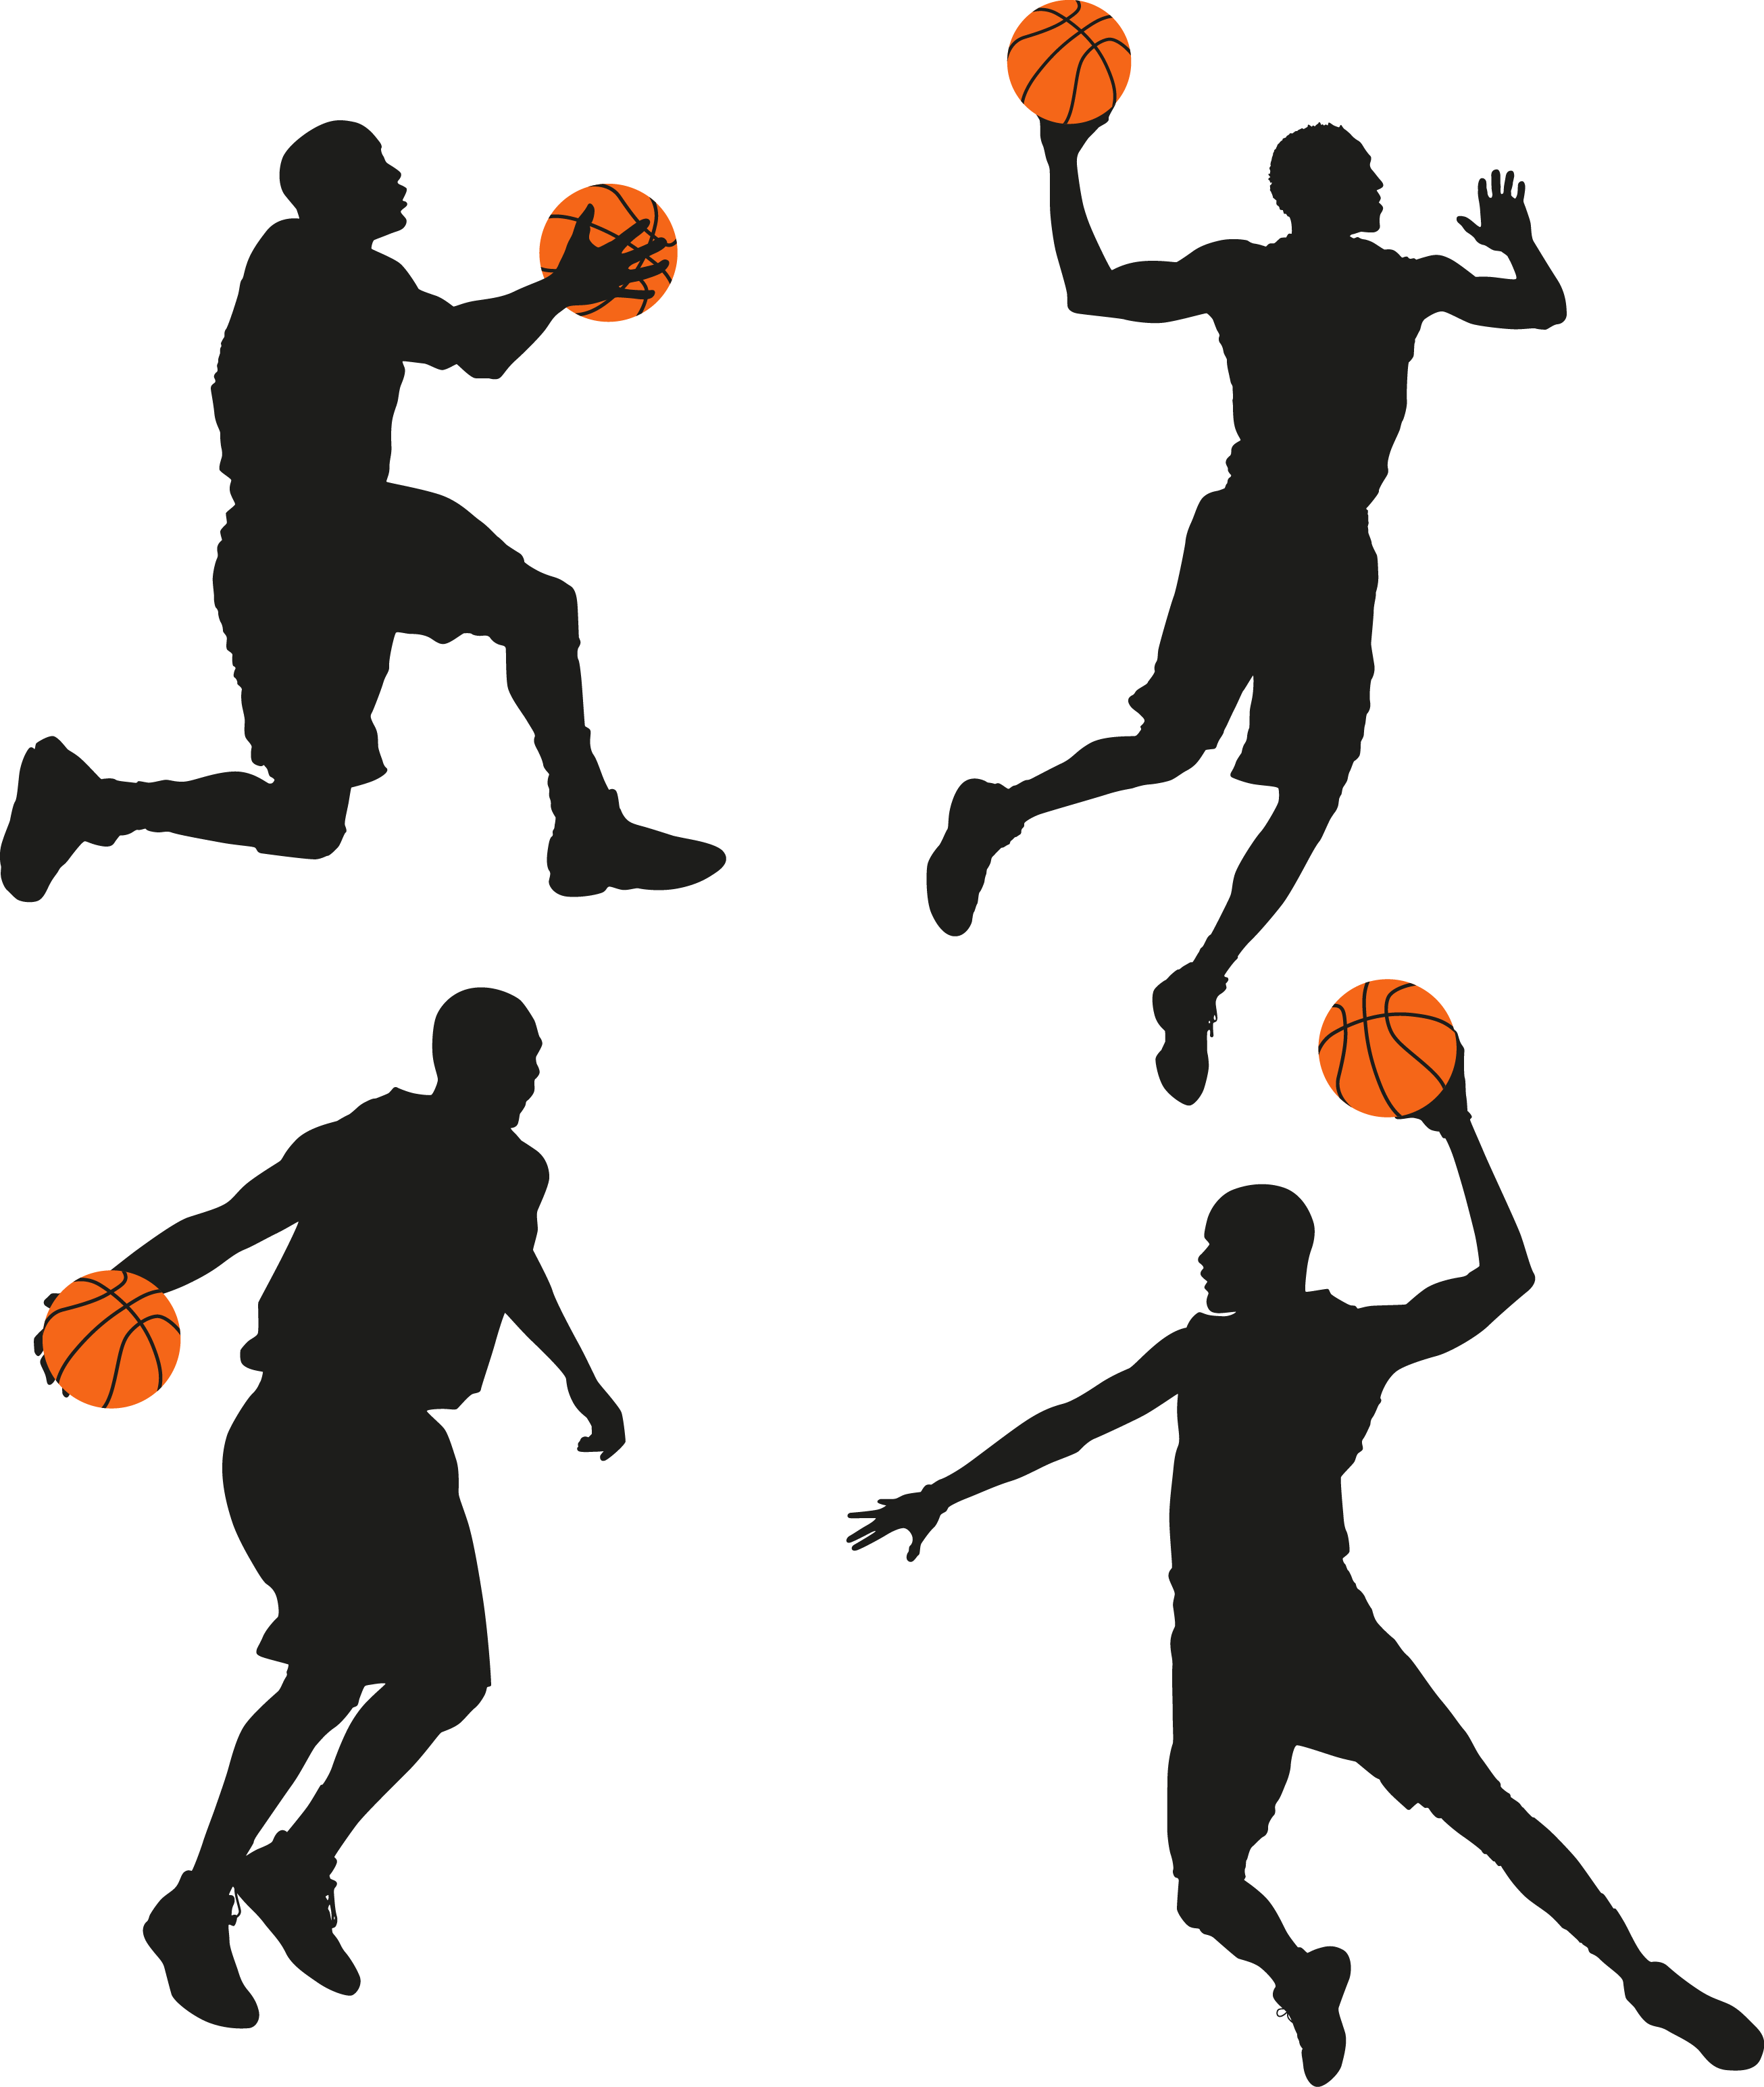 Silhouette at getdrawings com. Warrior clipart stephen curry